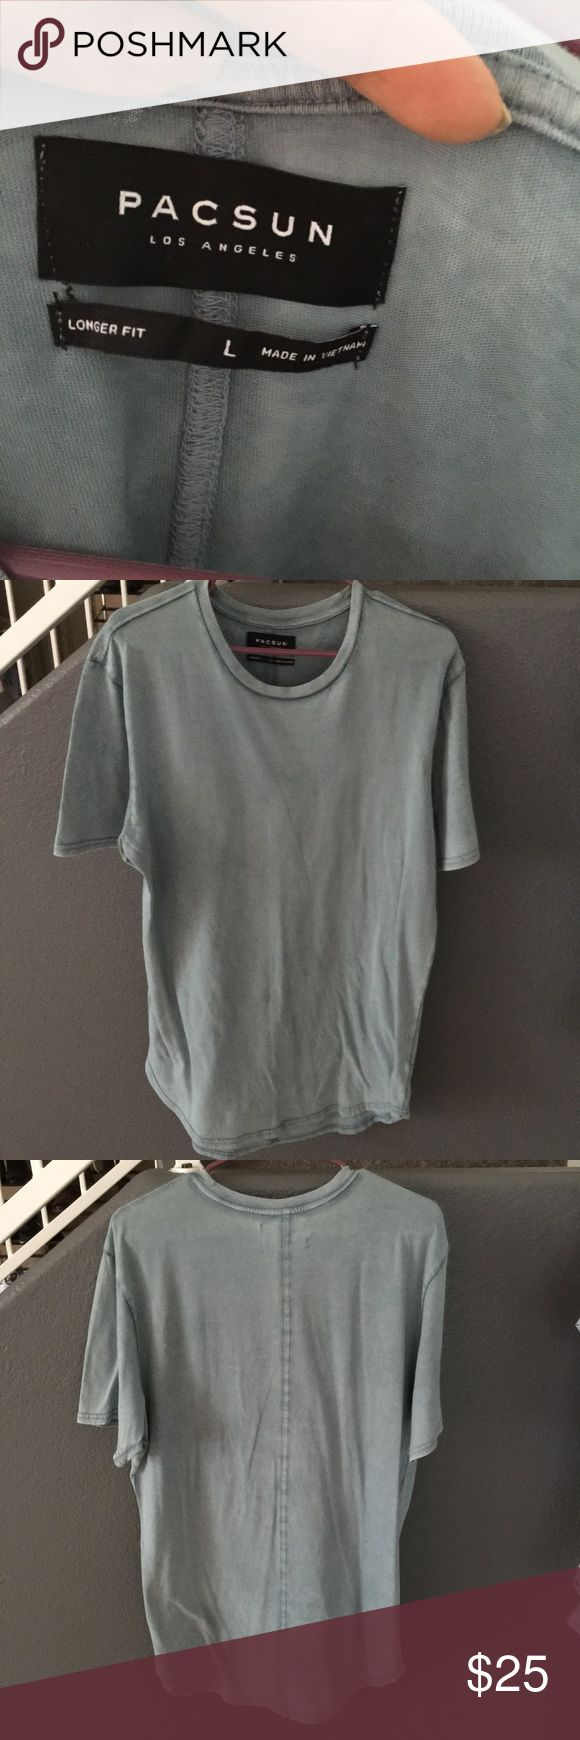 Pacsun longer fit scalloped tshirt Scalloped on the bottom  Worn twice PacSun Shirts Tees - Short Sleeve